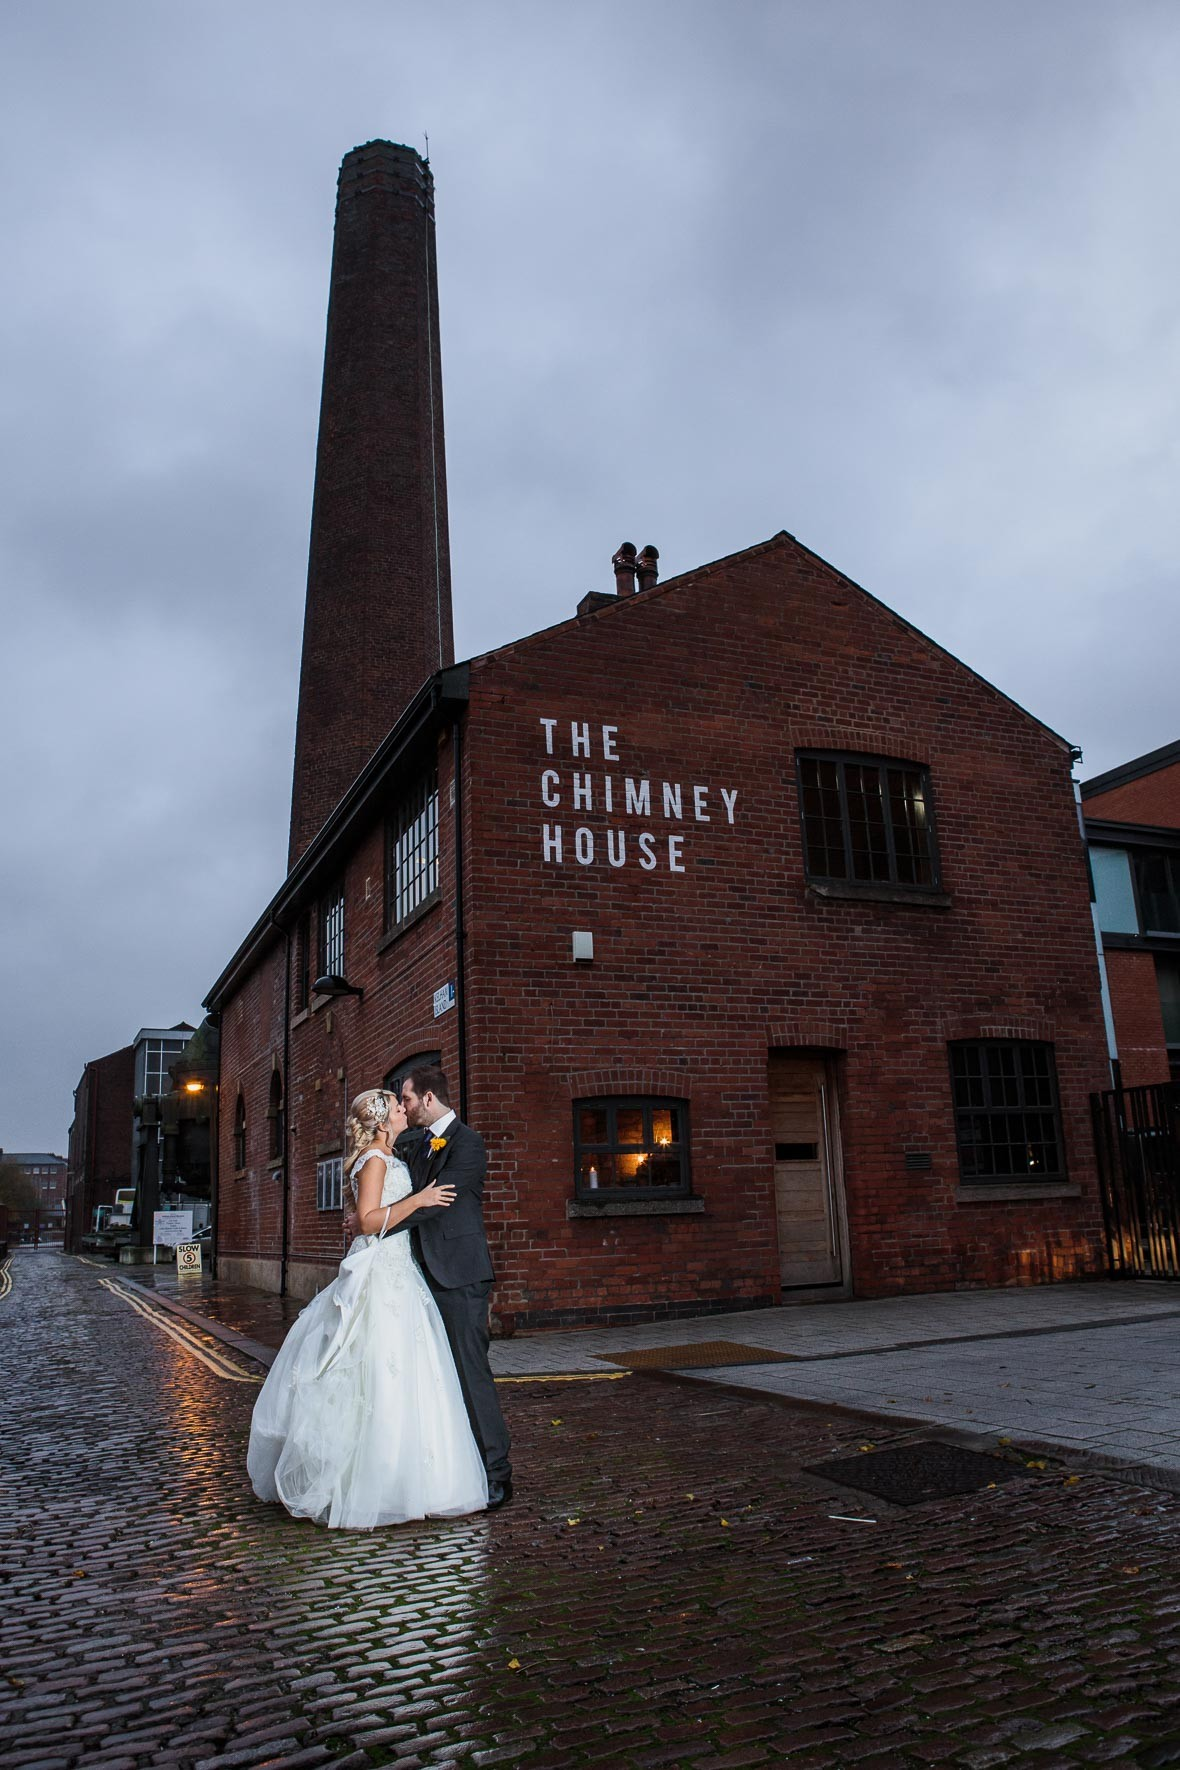 330-mercure-hotel-sheffield-wedding